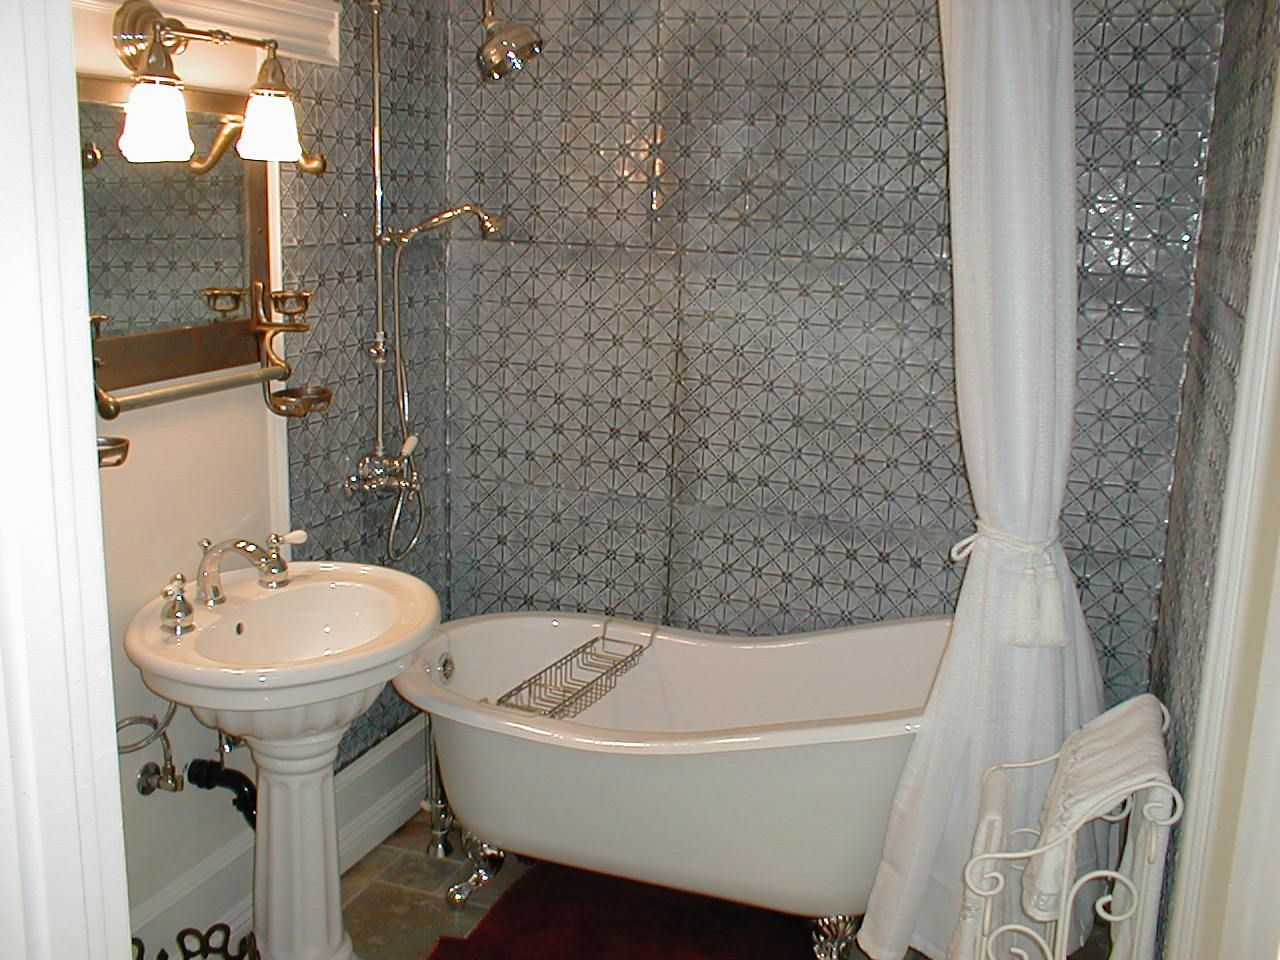 Clawfoot Tub Bathroom Design Ideas 28 Images Clawfoot Tub Separate Shower Ideas Pictures